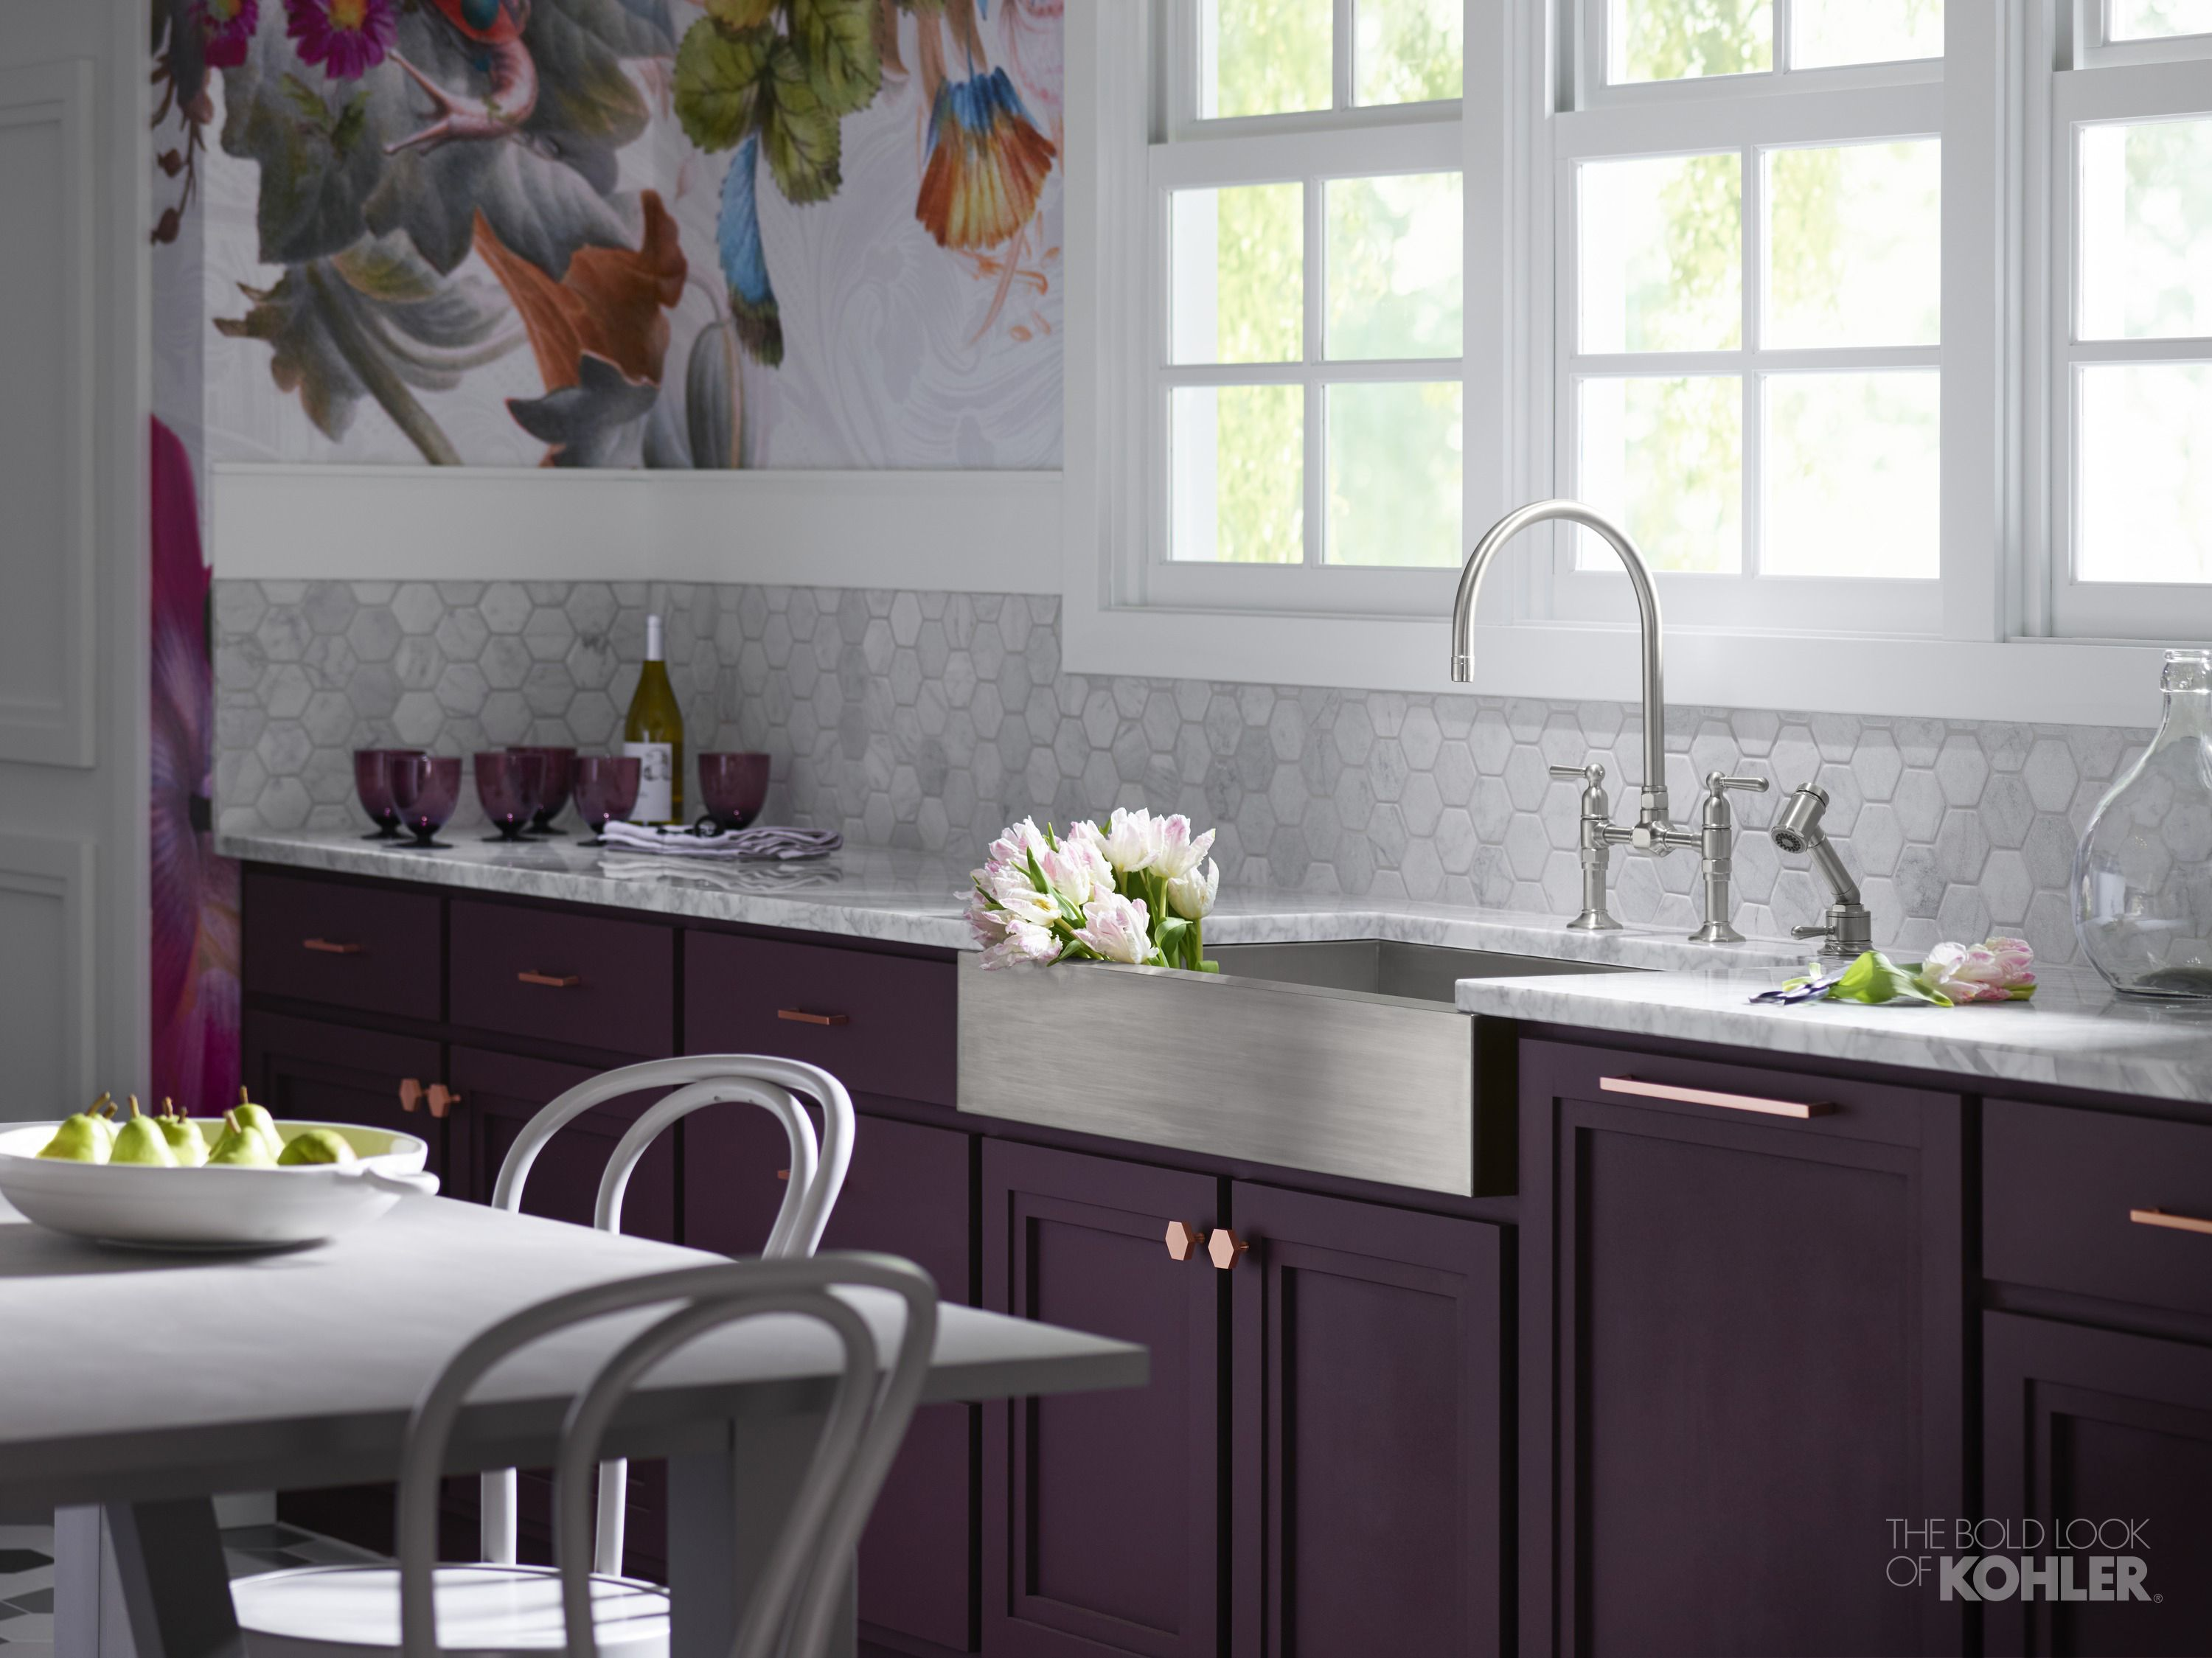 American Plum Kitchen Kohler Ideas Single Hole Kitchen Faucet Kitchen Faucet Delta Kitchen Faucet